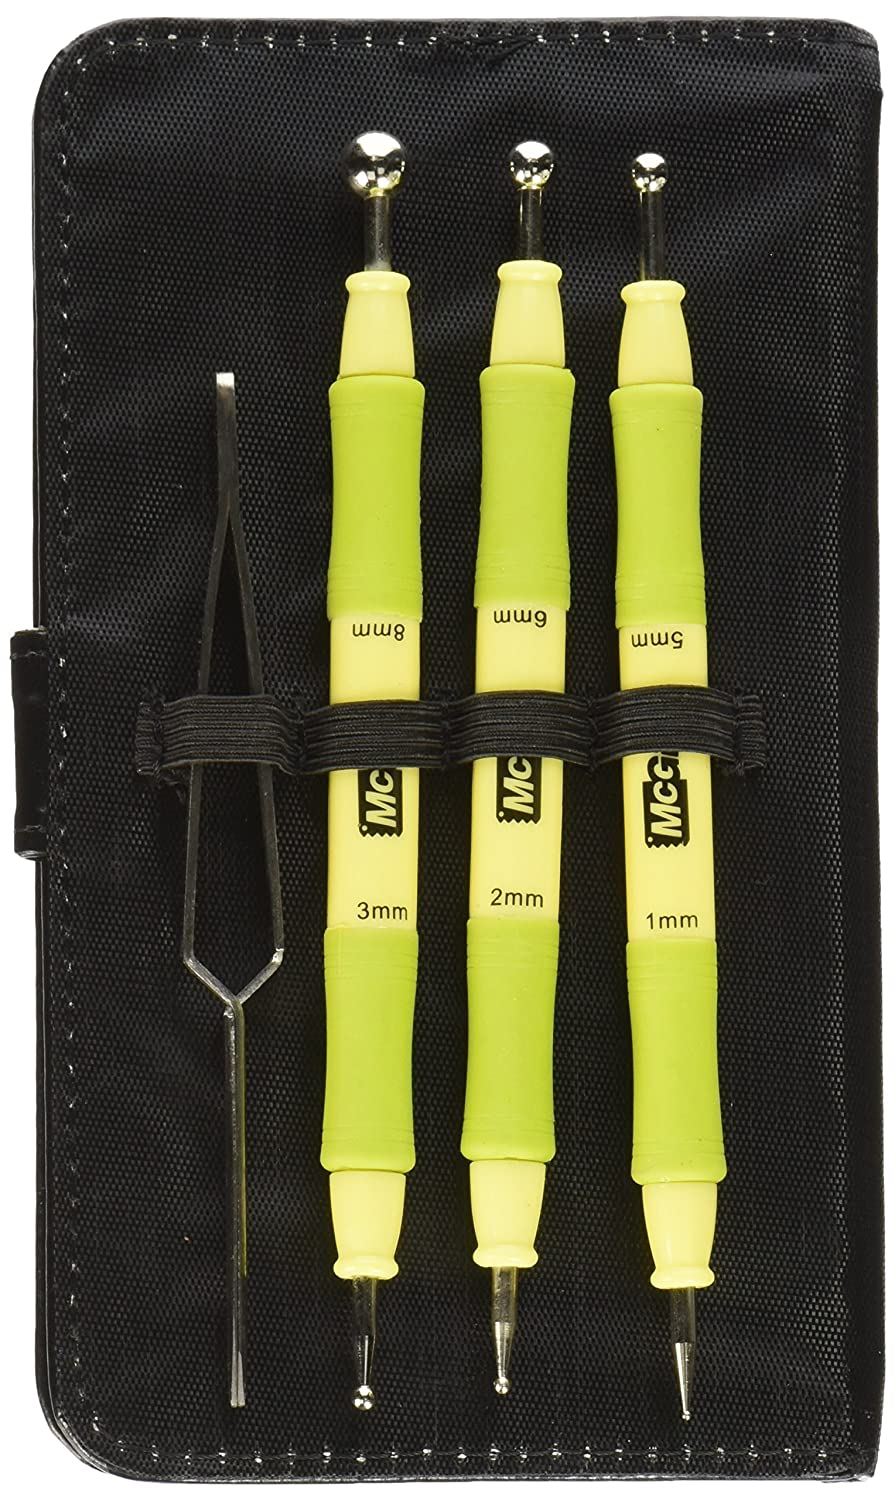 Mcgill 65800 Paper Blossom Tool Kit, Ball Tools, 4 Pack